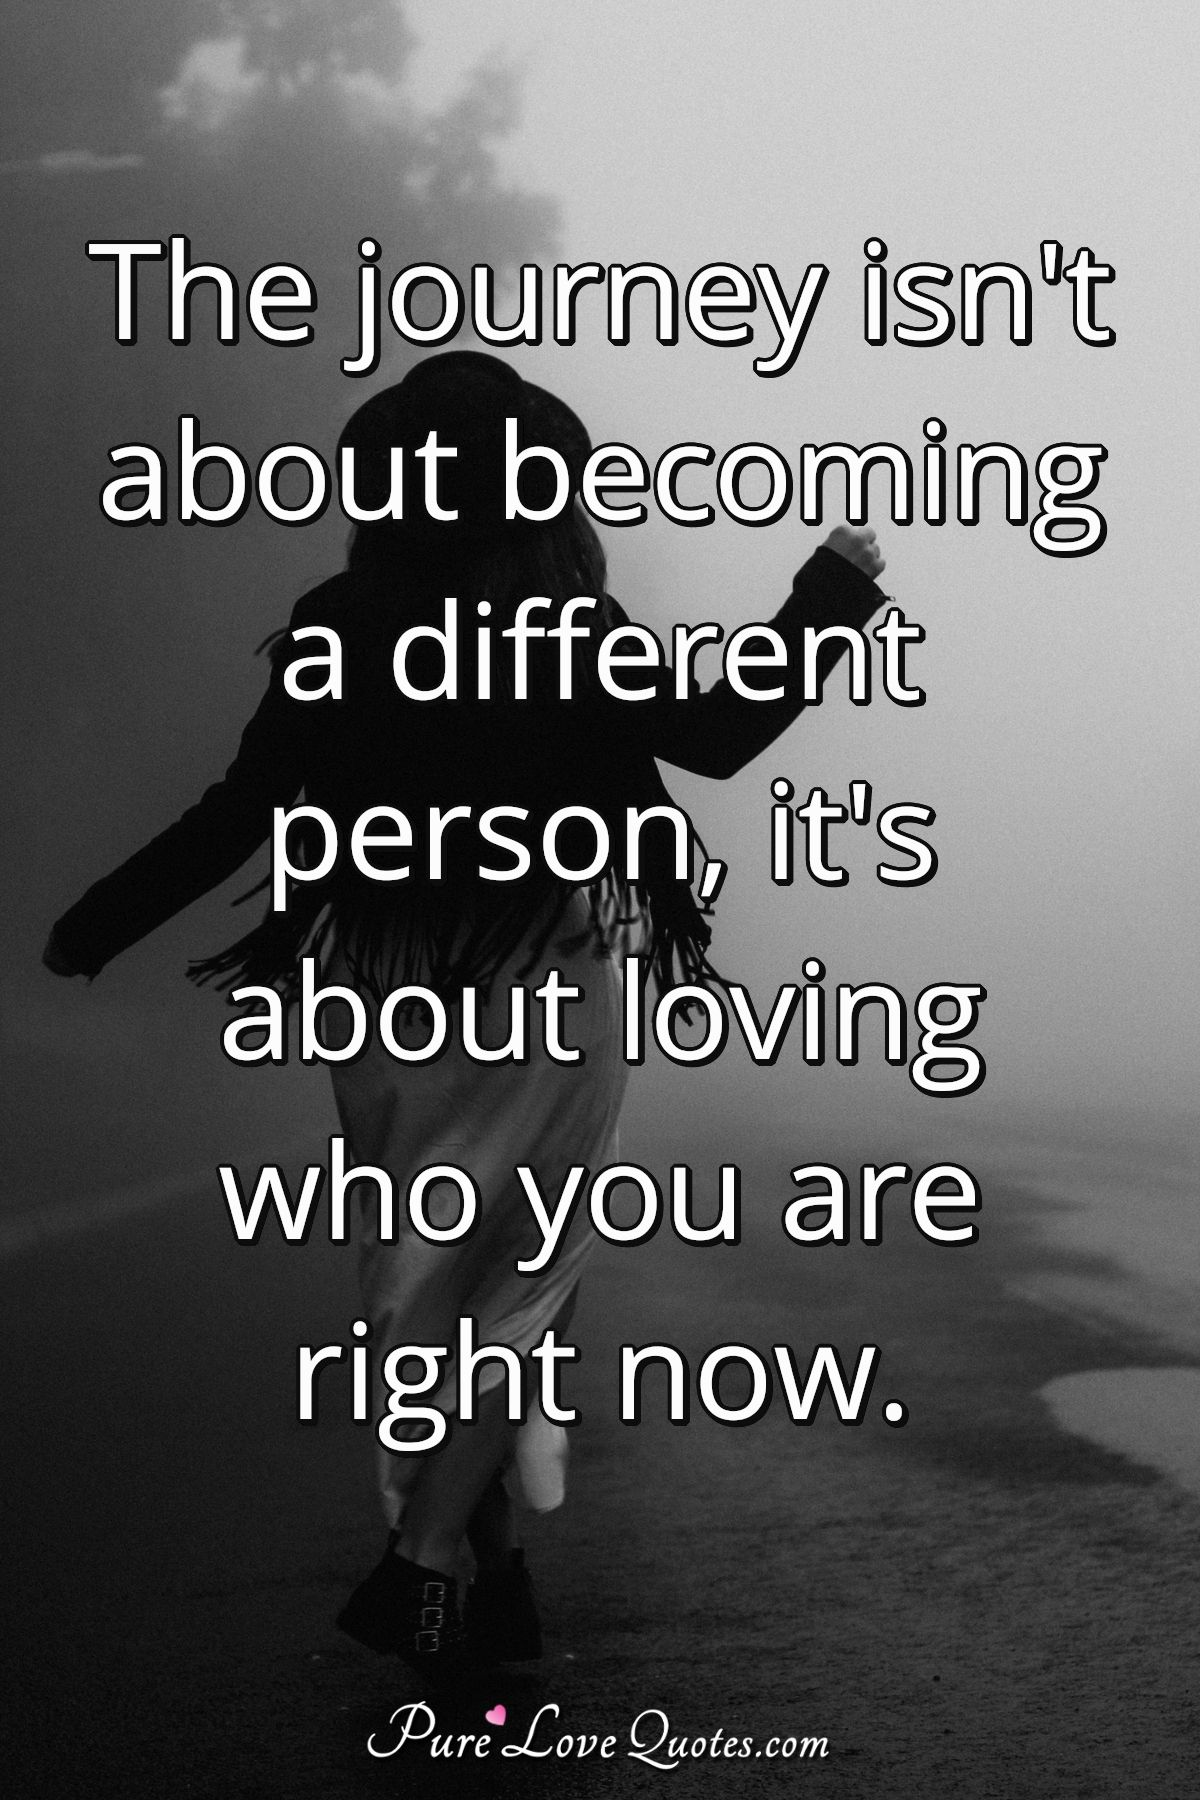 The journey isn't about becoming a different person, it's about loving who you are right now. - Anonymous